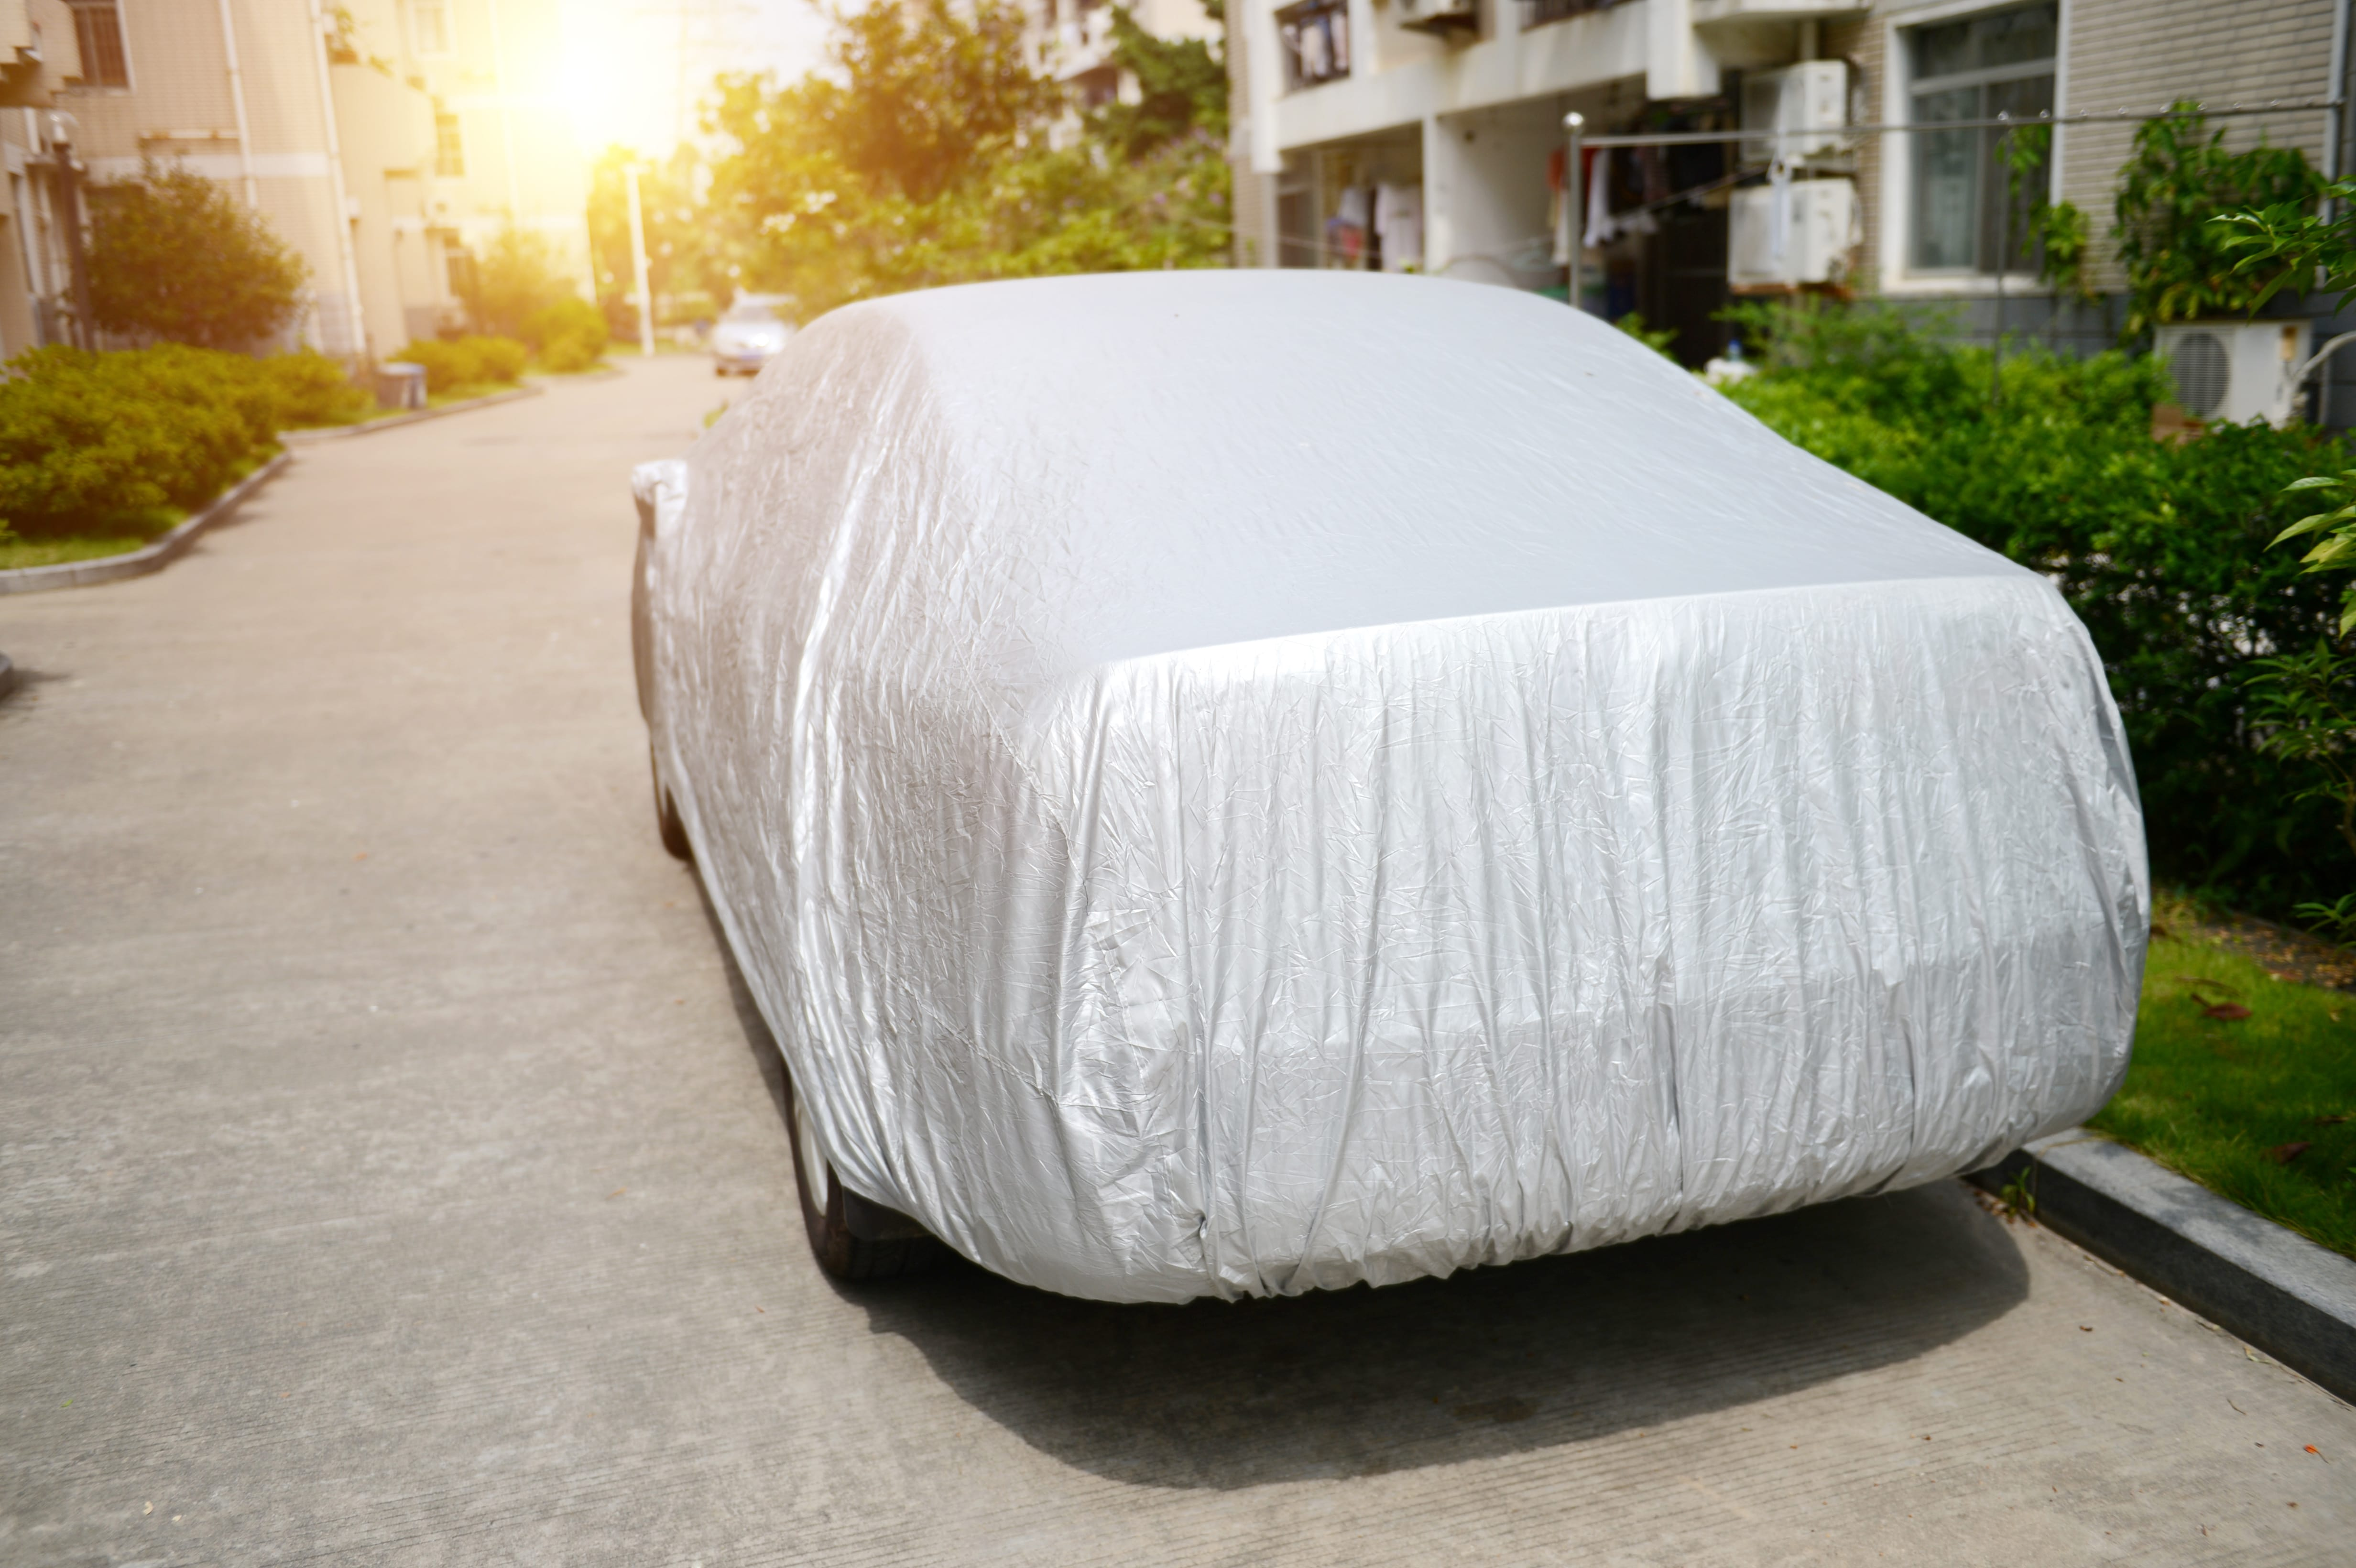 car-parked-protective-cover-178319